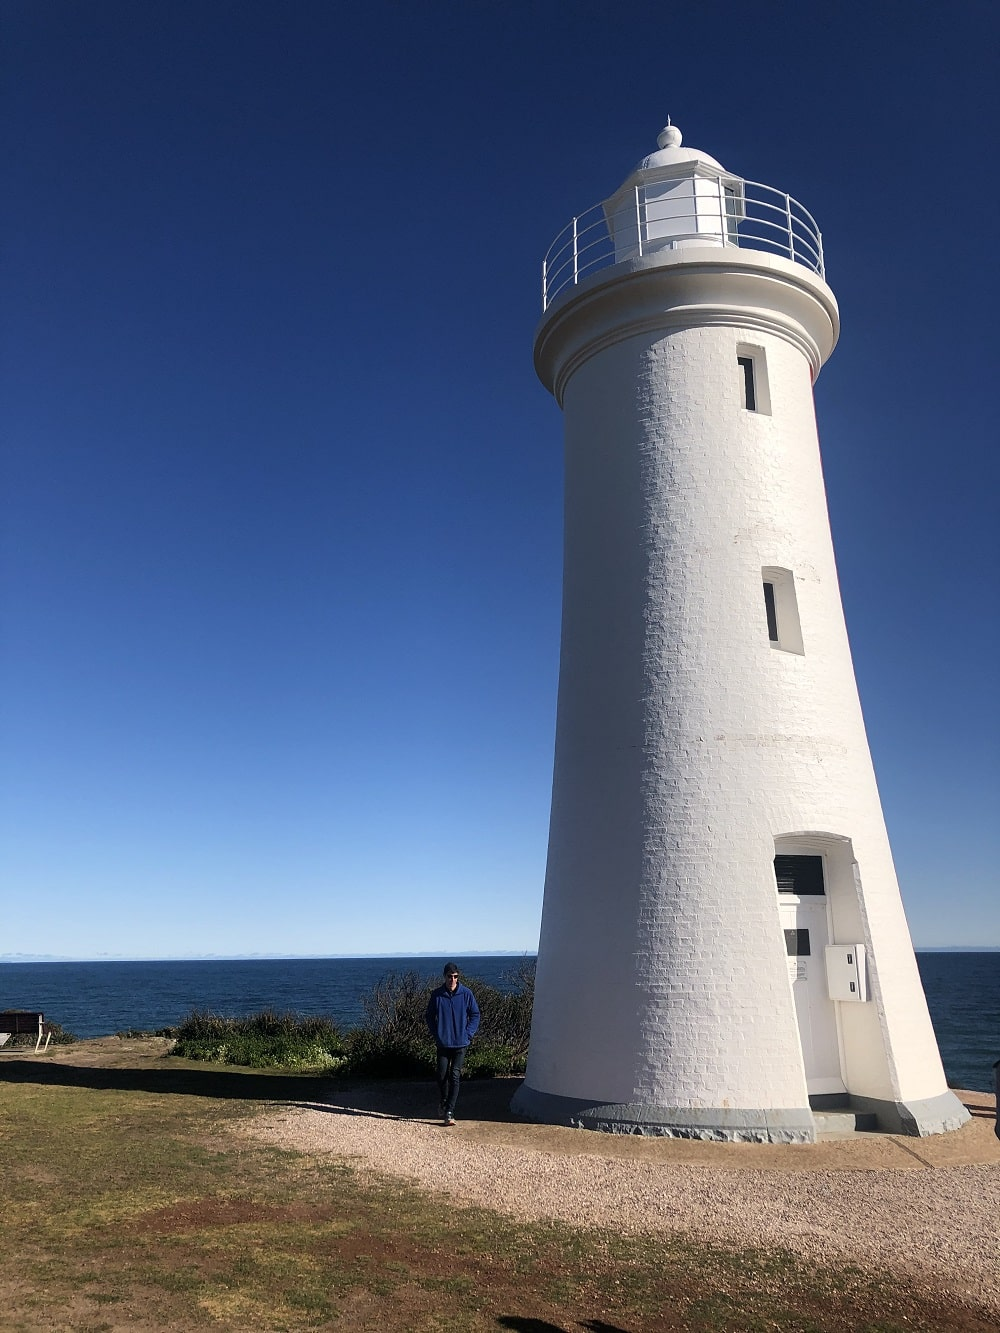 Lighthouse in Devonport - Media Mortar | 7 key takeaways from the Australian Regional Tourism (ART) Convention